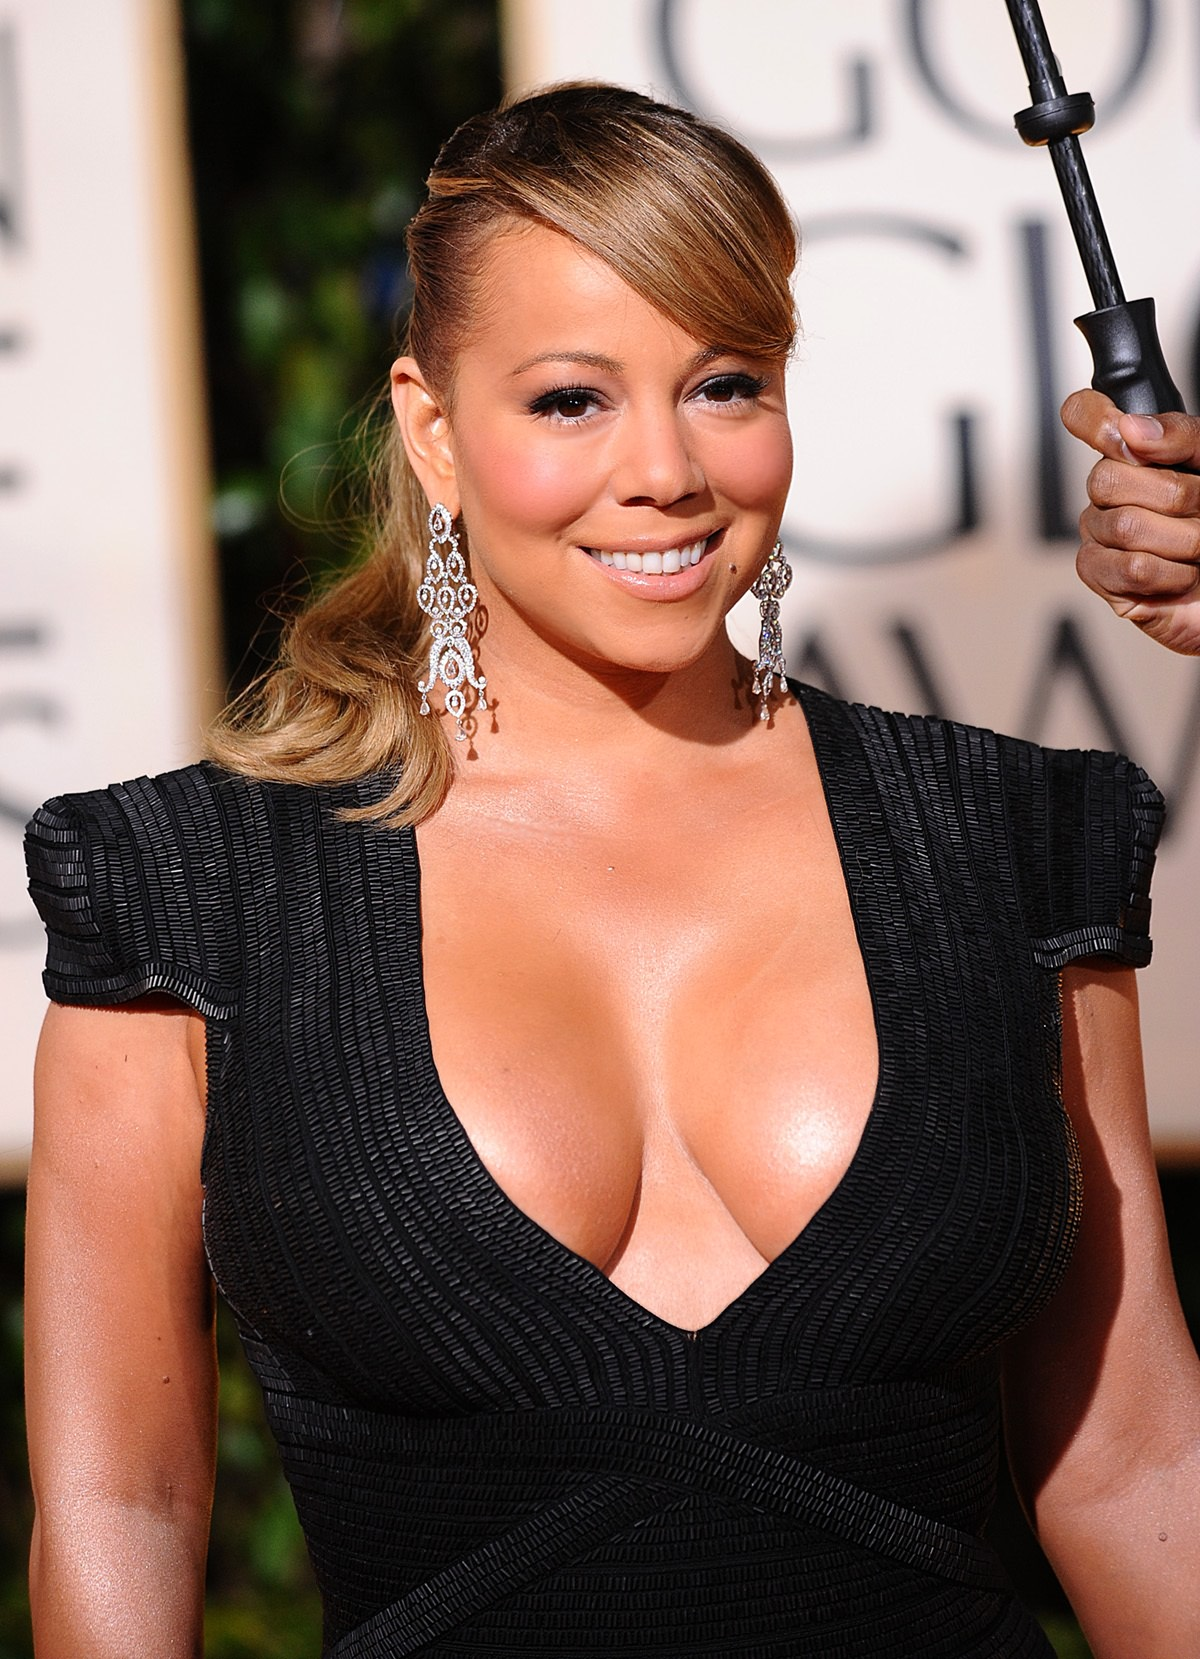 Mariah Carey Boob Job  Height And Weights-5671